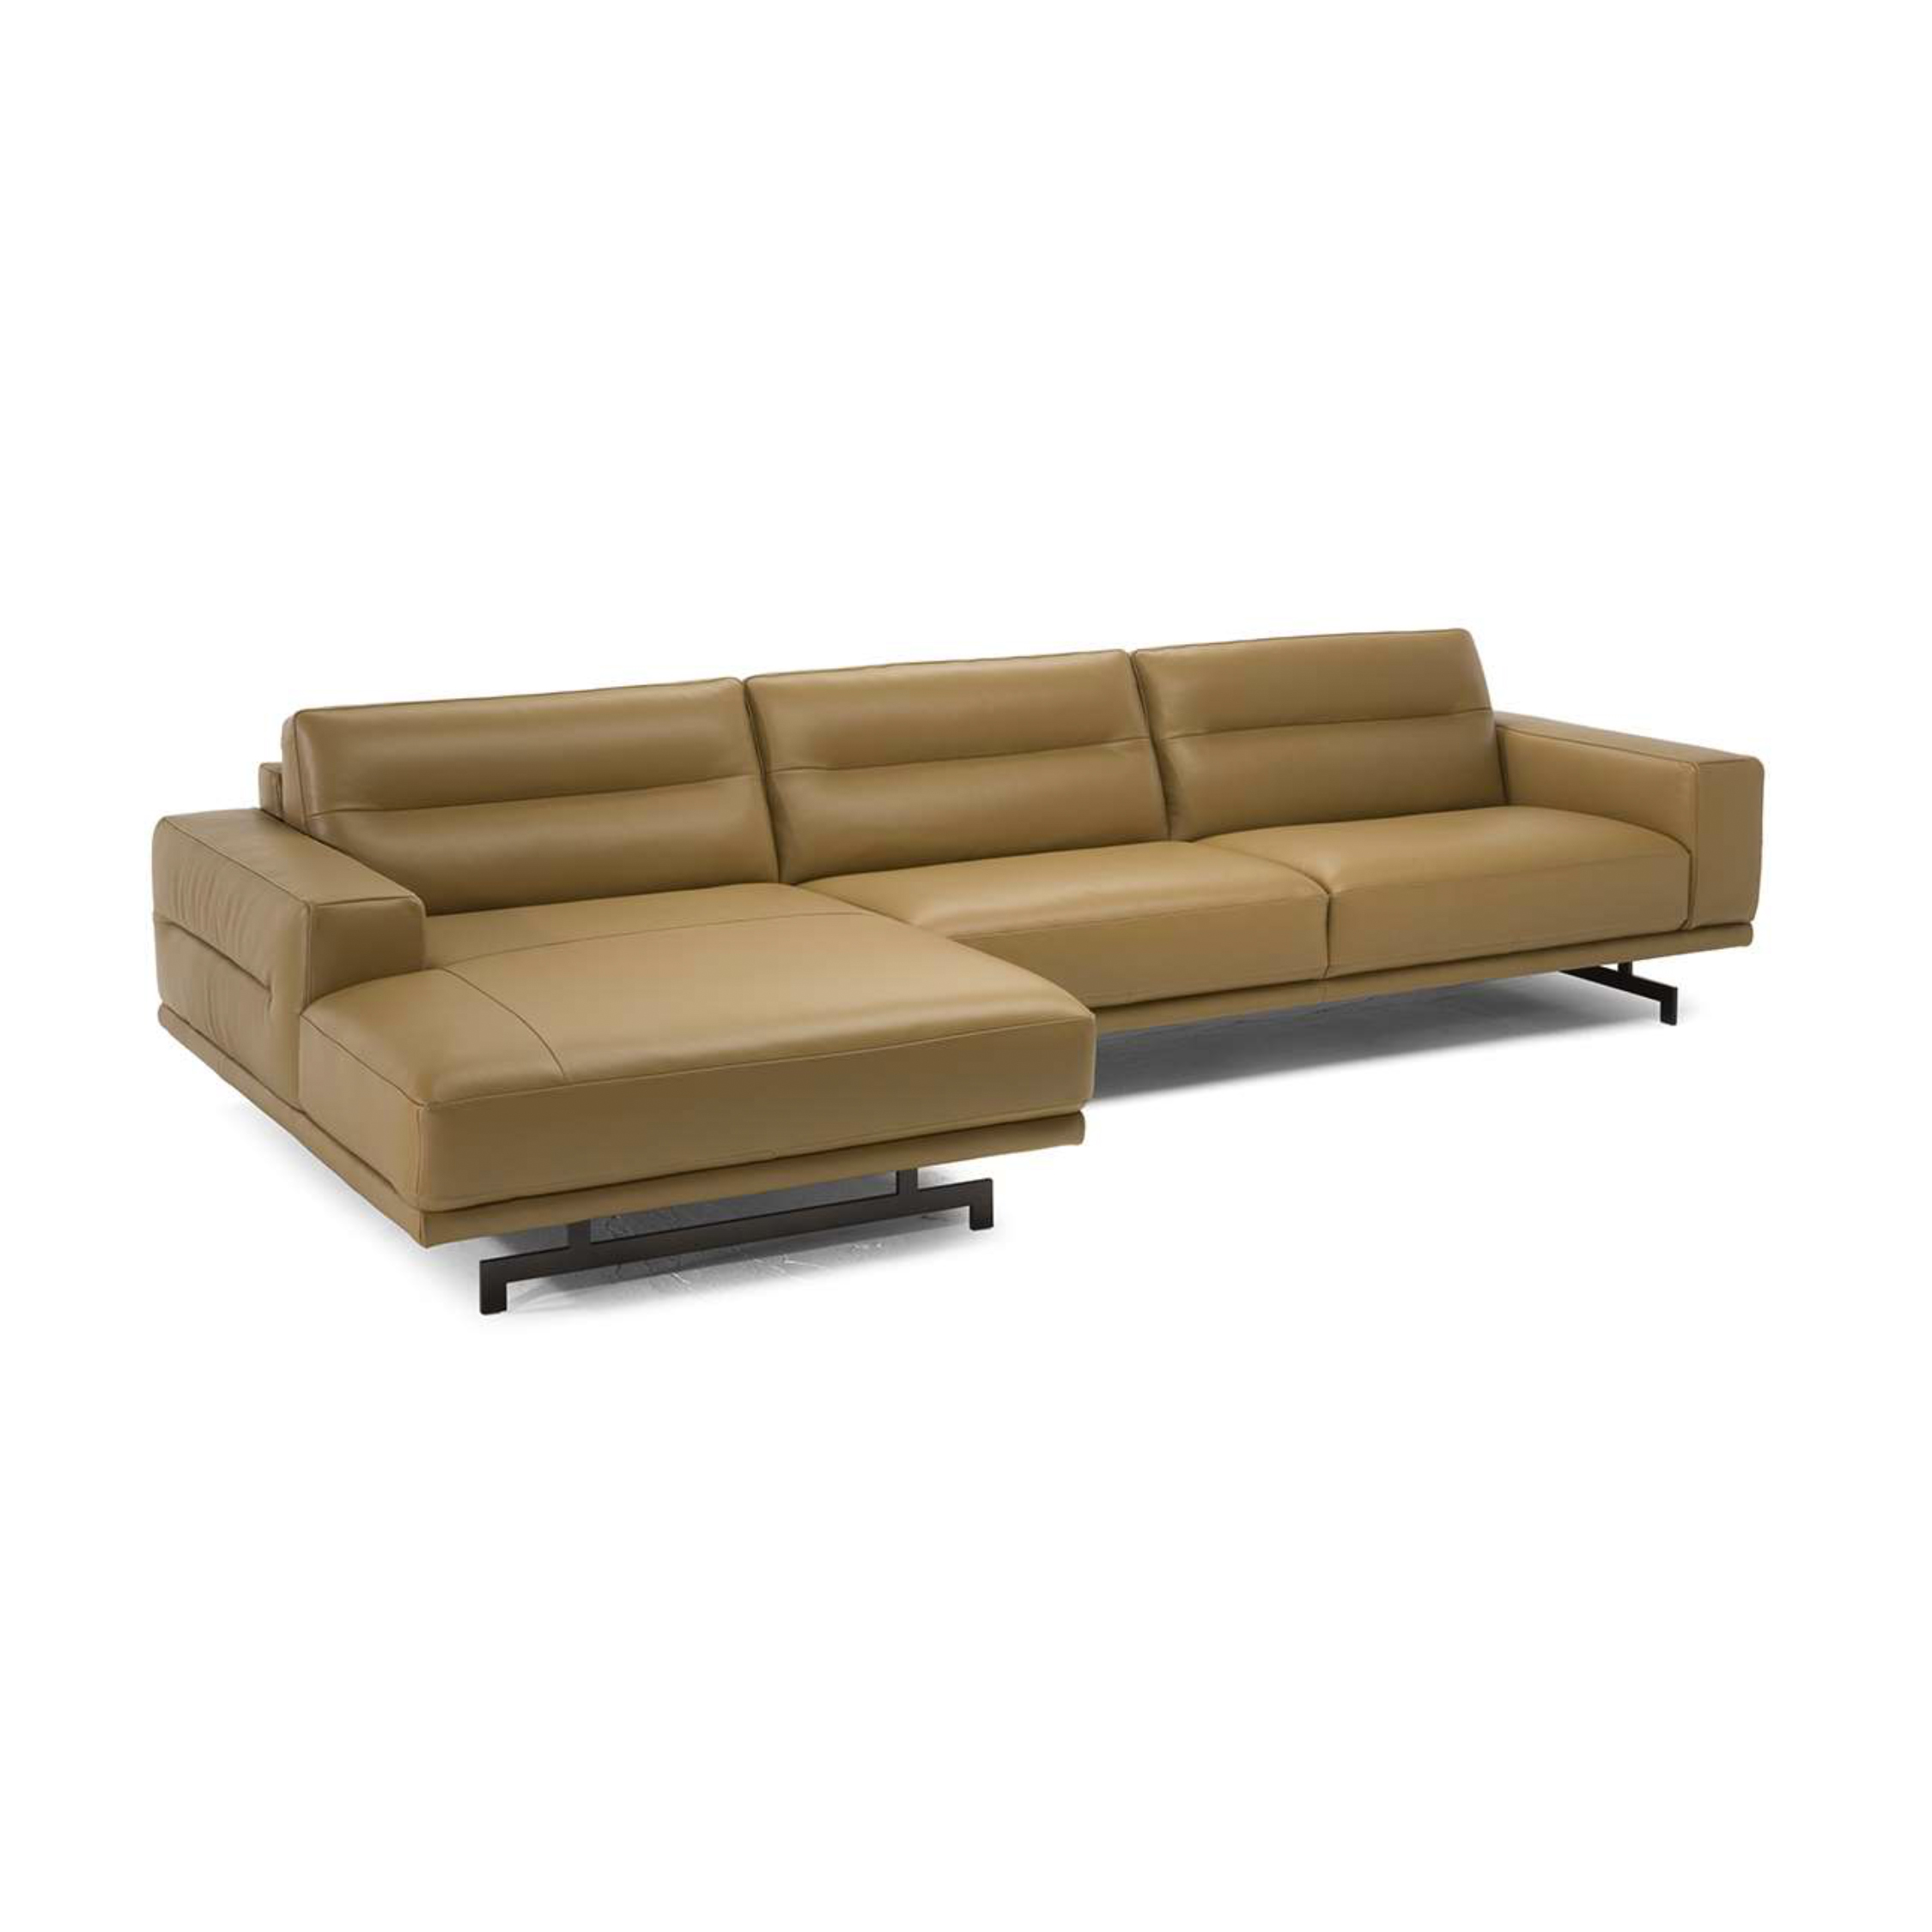 natuzzi lounge chair indoor hammock chairs editions ofena sofa with chaise